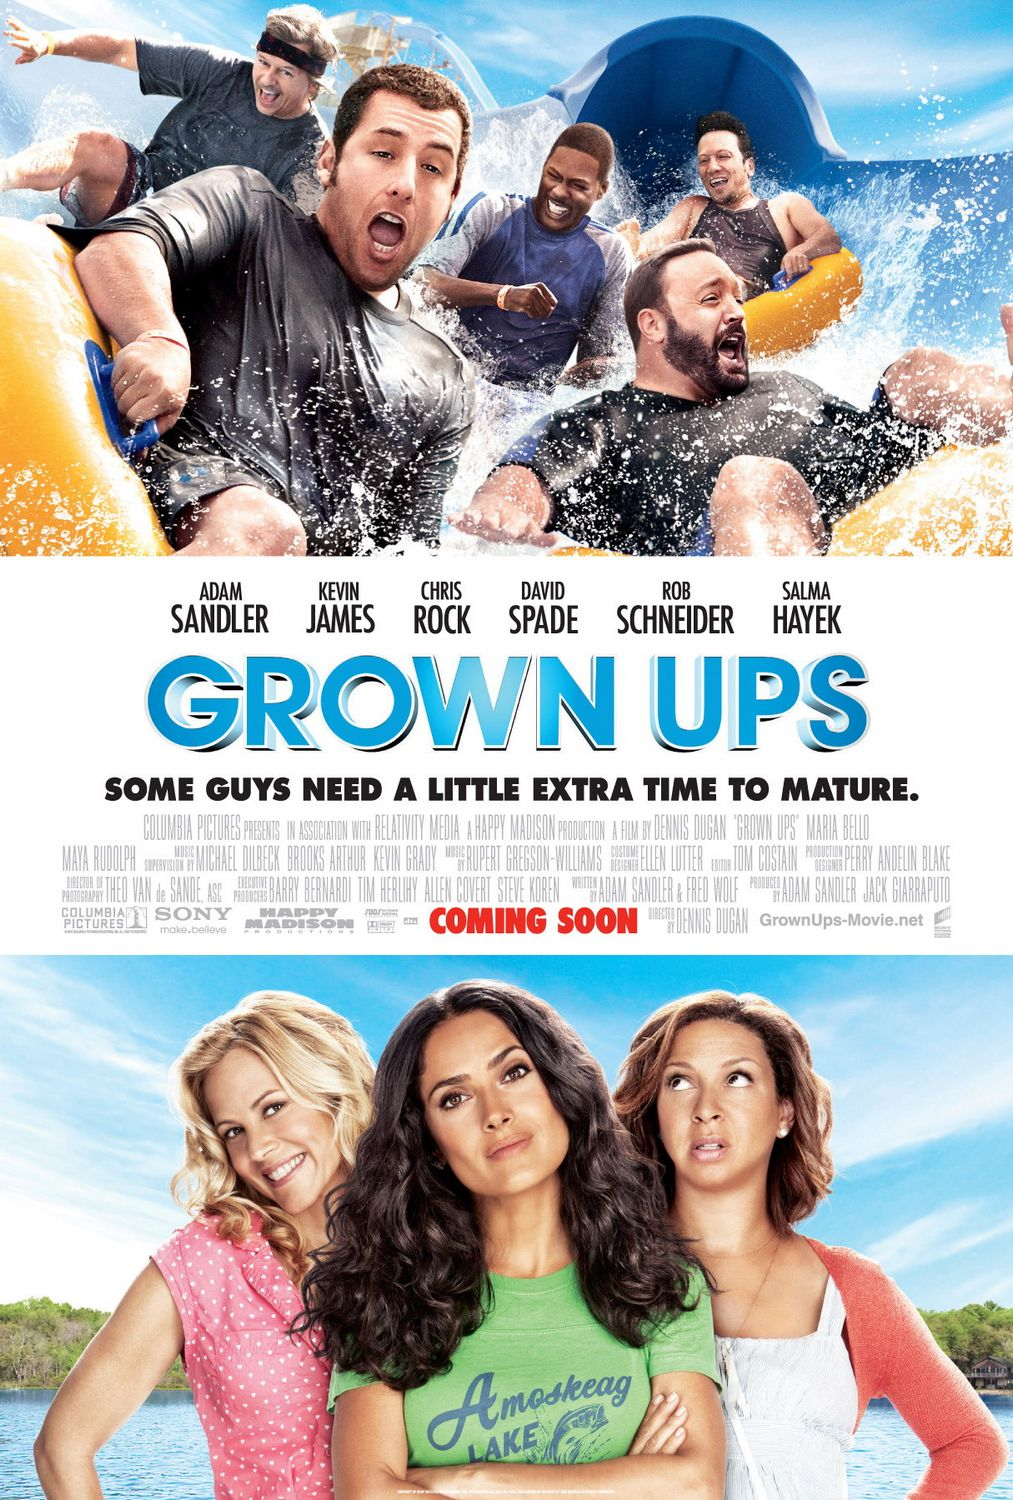 Zachary S. Marsh's Movie Reviews: REVIEW: Grown Ups